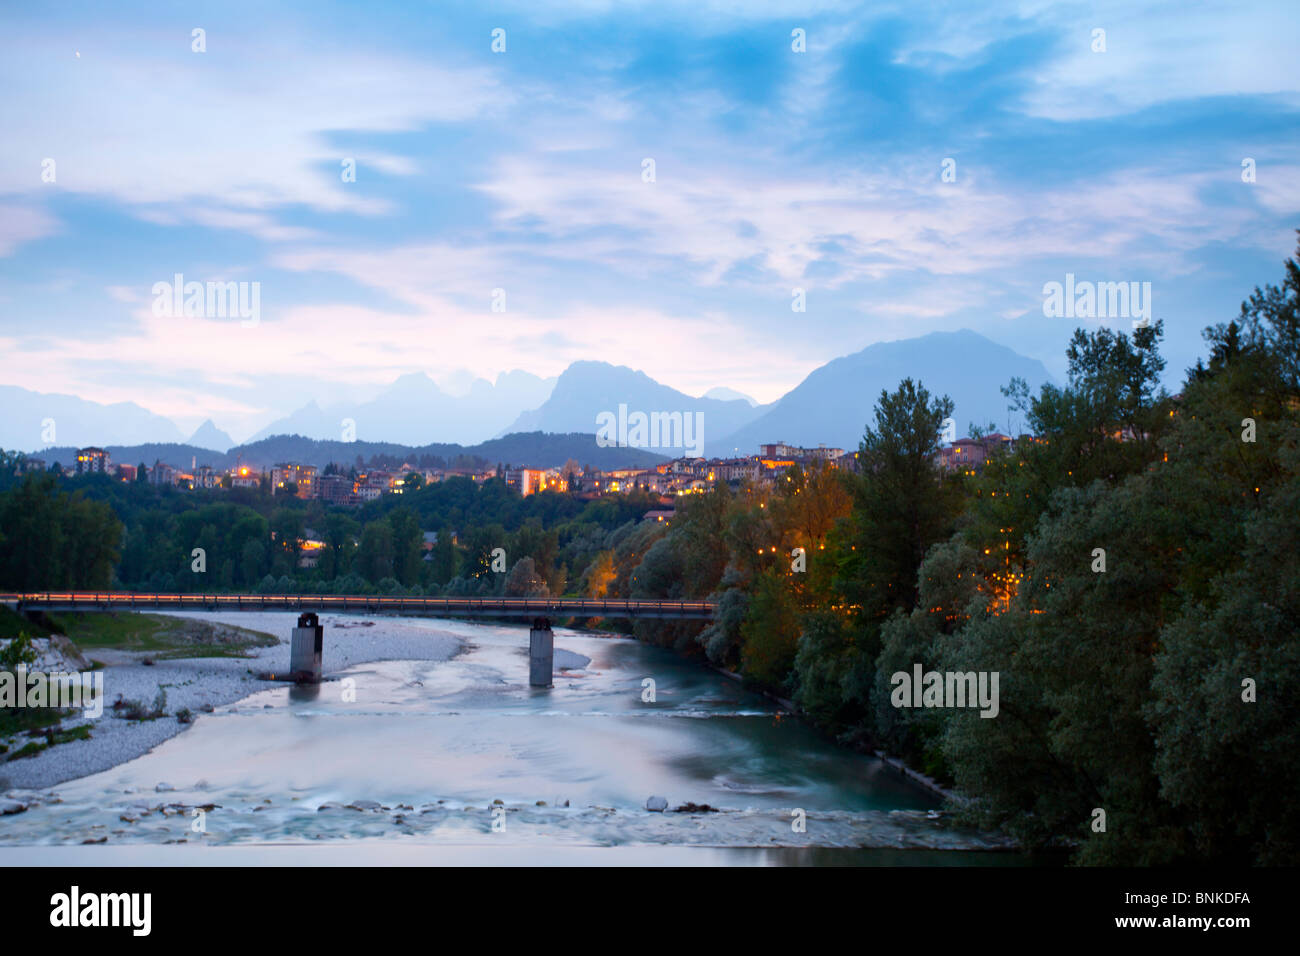 The mountain town of belluno captured at sunset with the dolomite mountains in the background - Stock Image